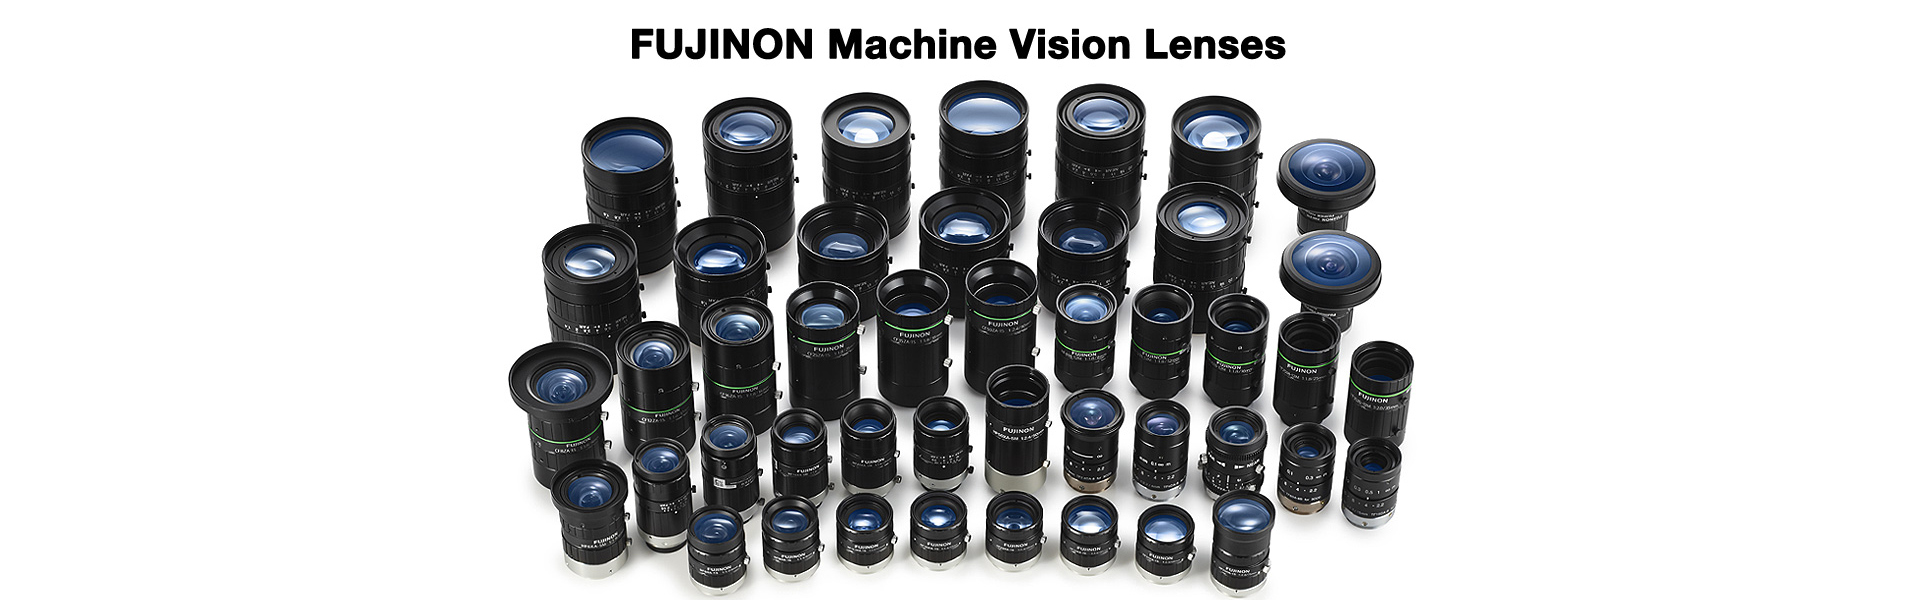 [photo] Group of all FUJINON Machine Vision lenses lined up together